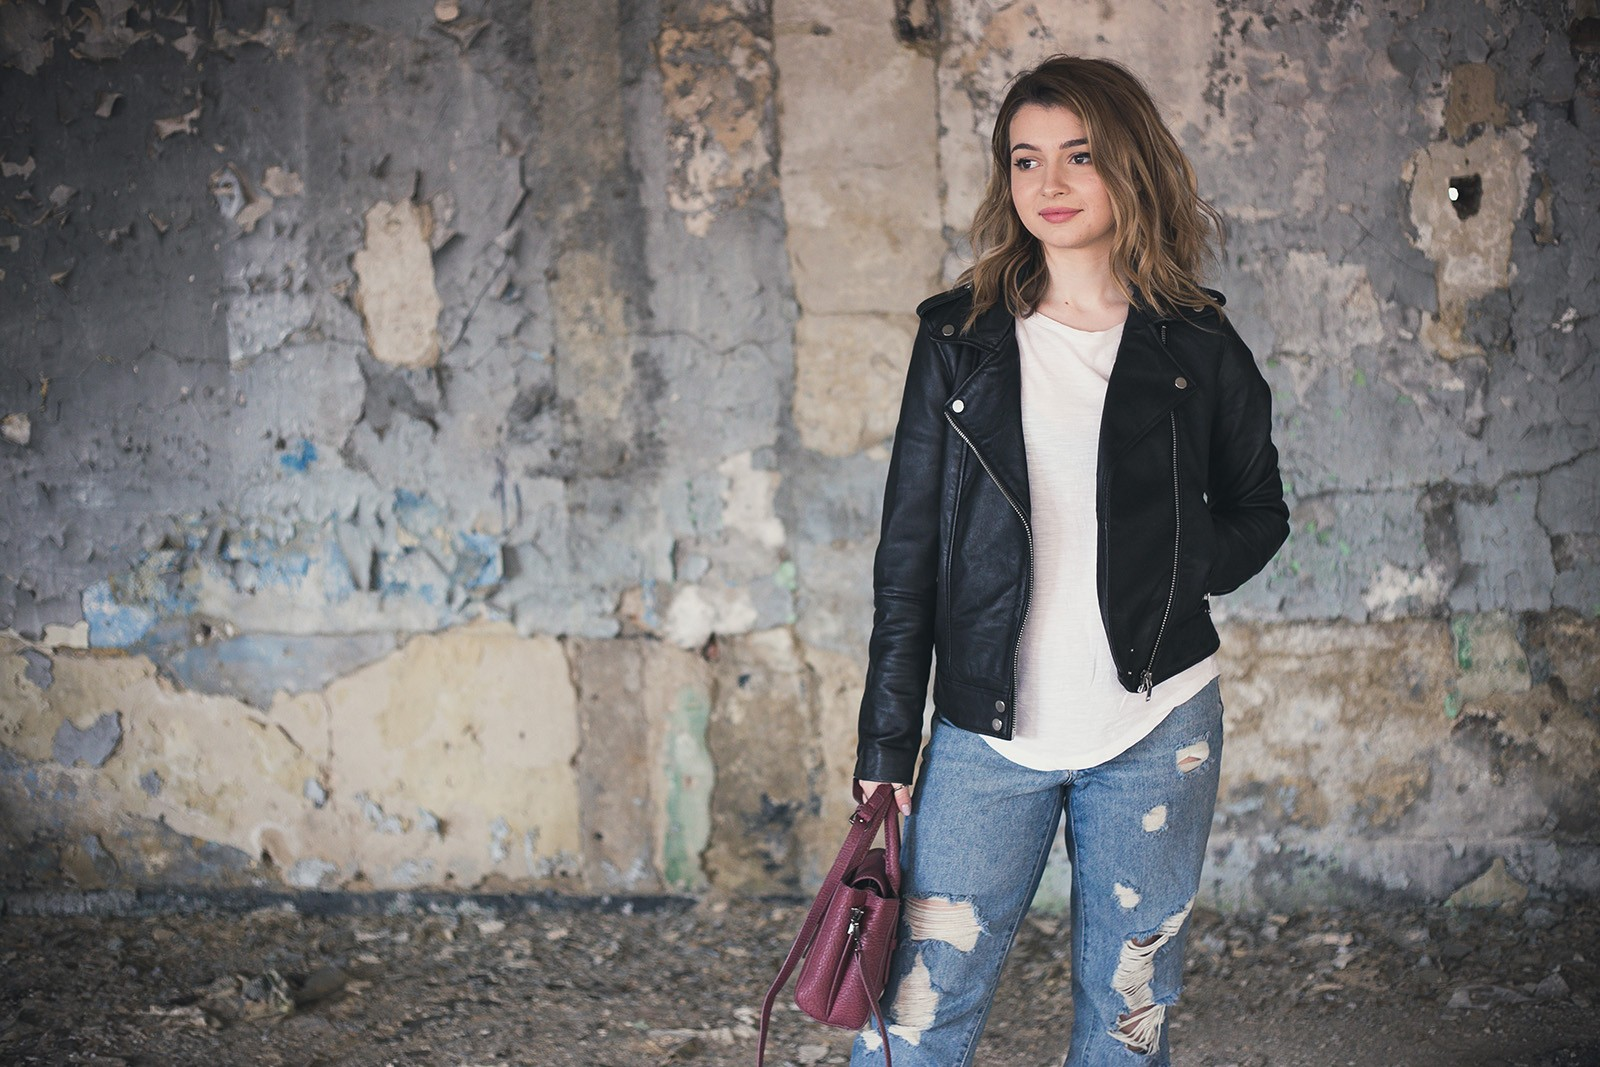 denisaismam-leather-jacket-boyfriend-jeans-burgundy-bag_1922